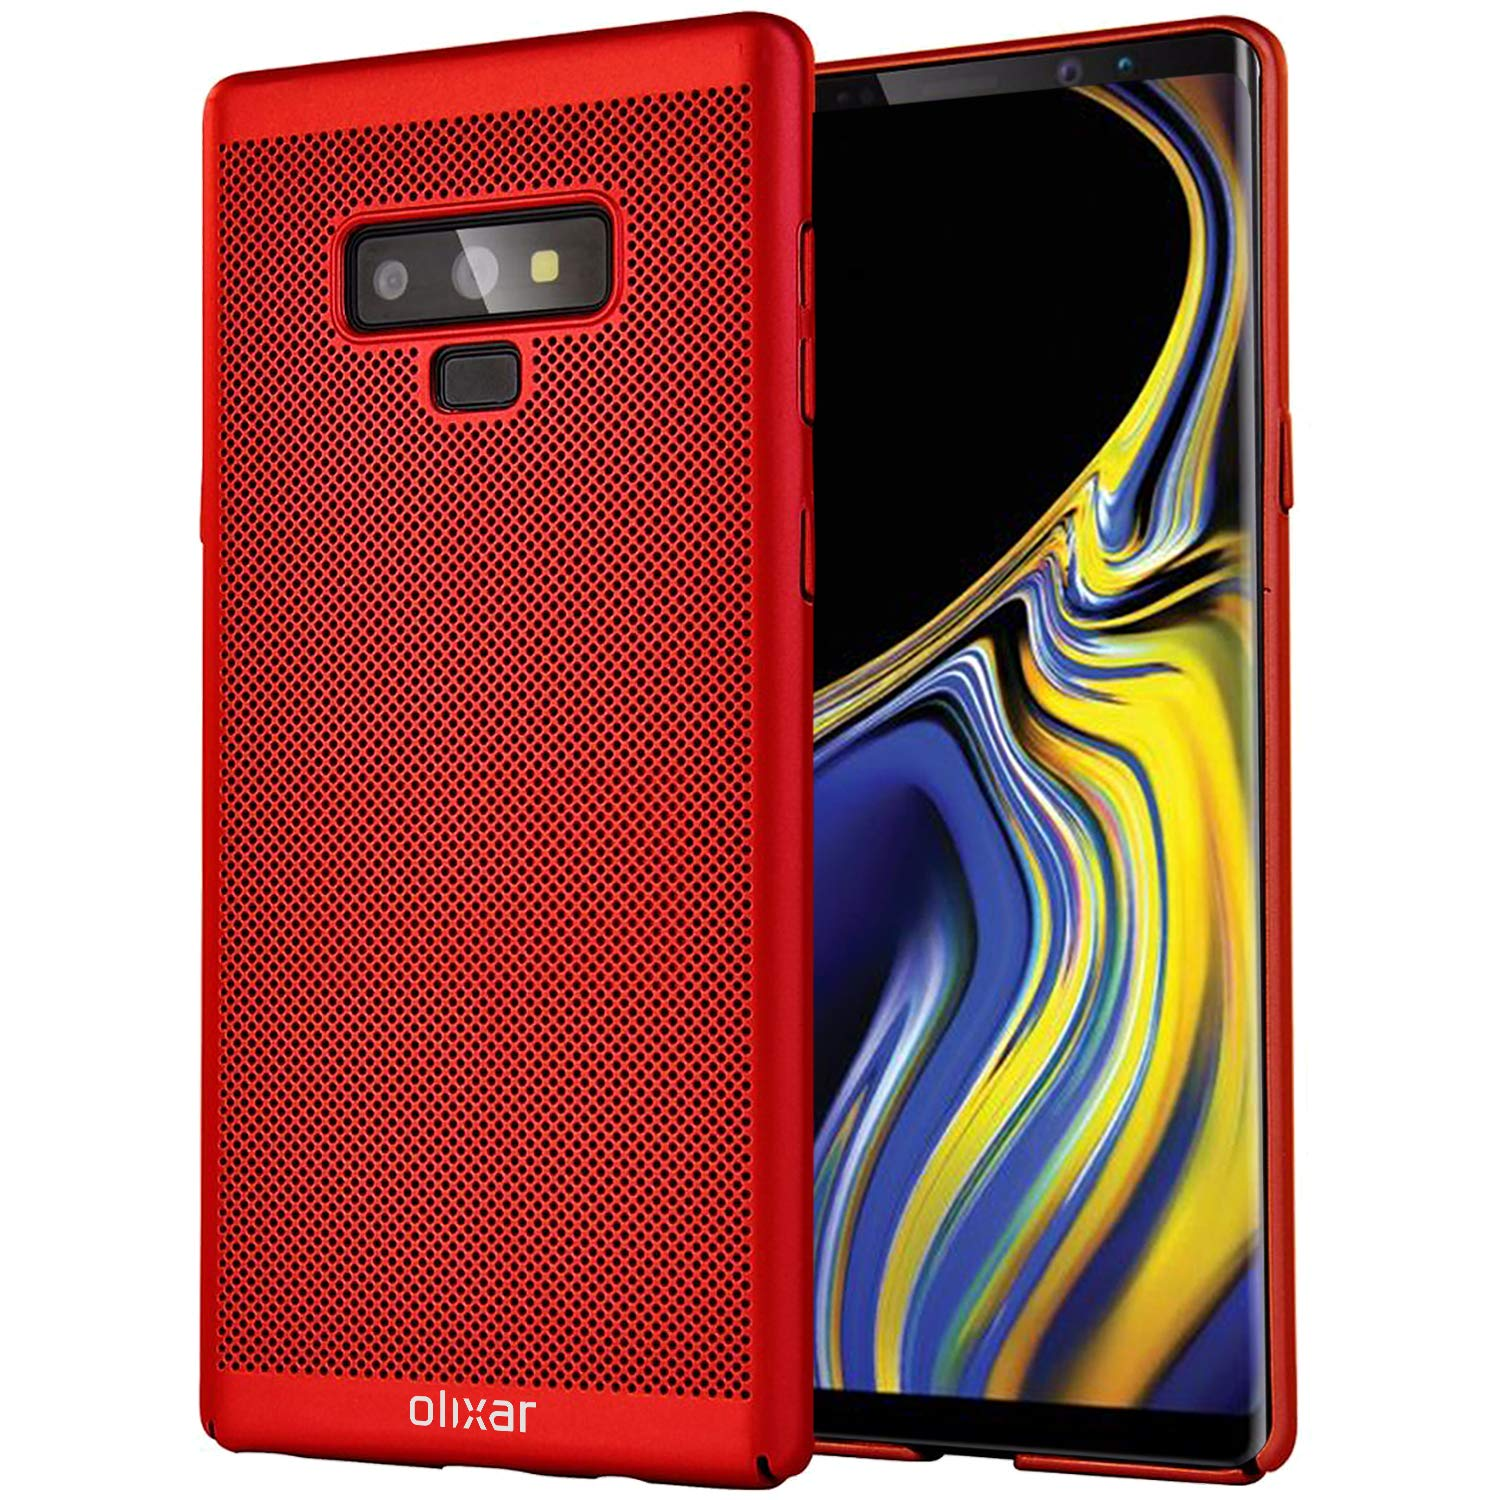 Olixar Samsung Galaxy Note 9 Breathable Case Heat Spigen Modern Slim Design Neo Hybrid Casing Burgundy Dissipating Mesh Cover Cooling Material Wireless Charging Compatible Meshtex Red